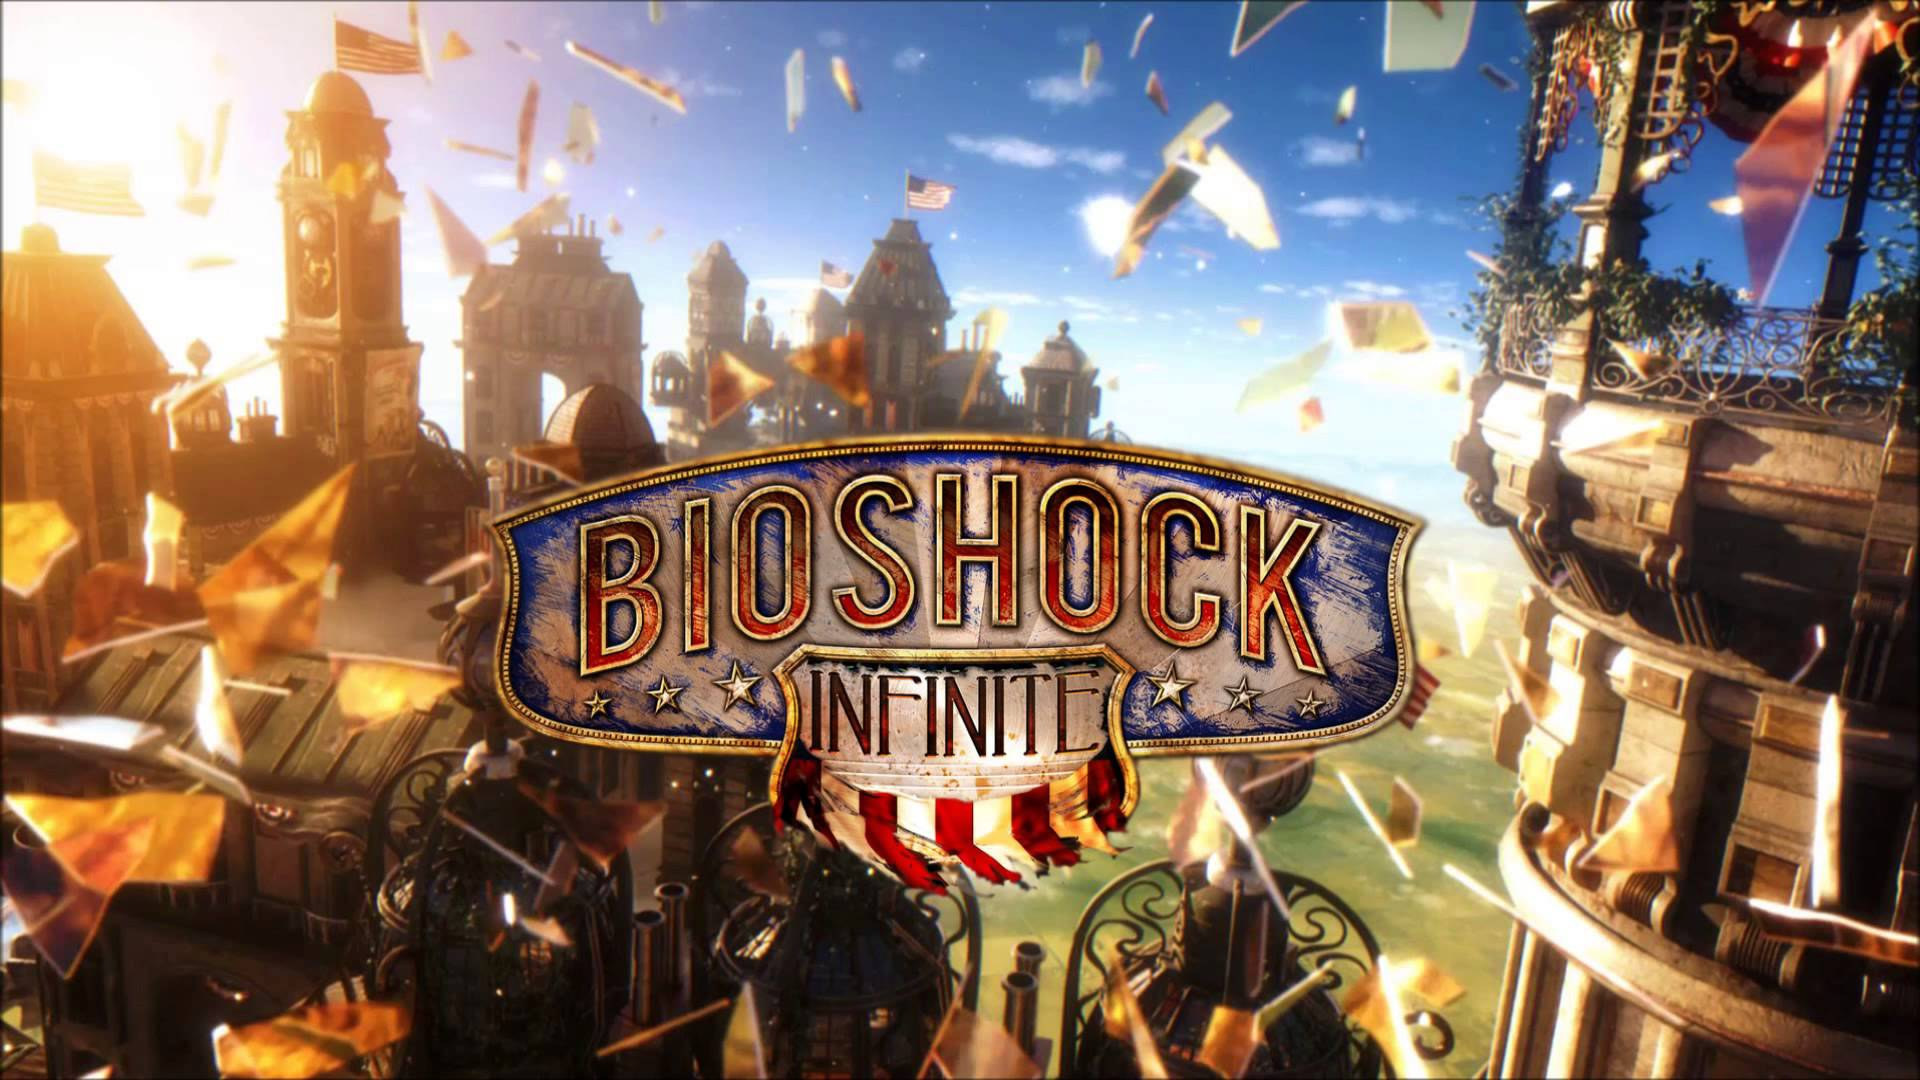 The Third Installment In BioShock Series Bioshock Infinite Starring Booker And Elizabeth Air City Of Colombo Other Characters